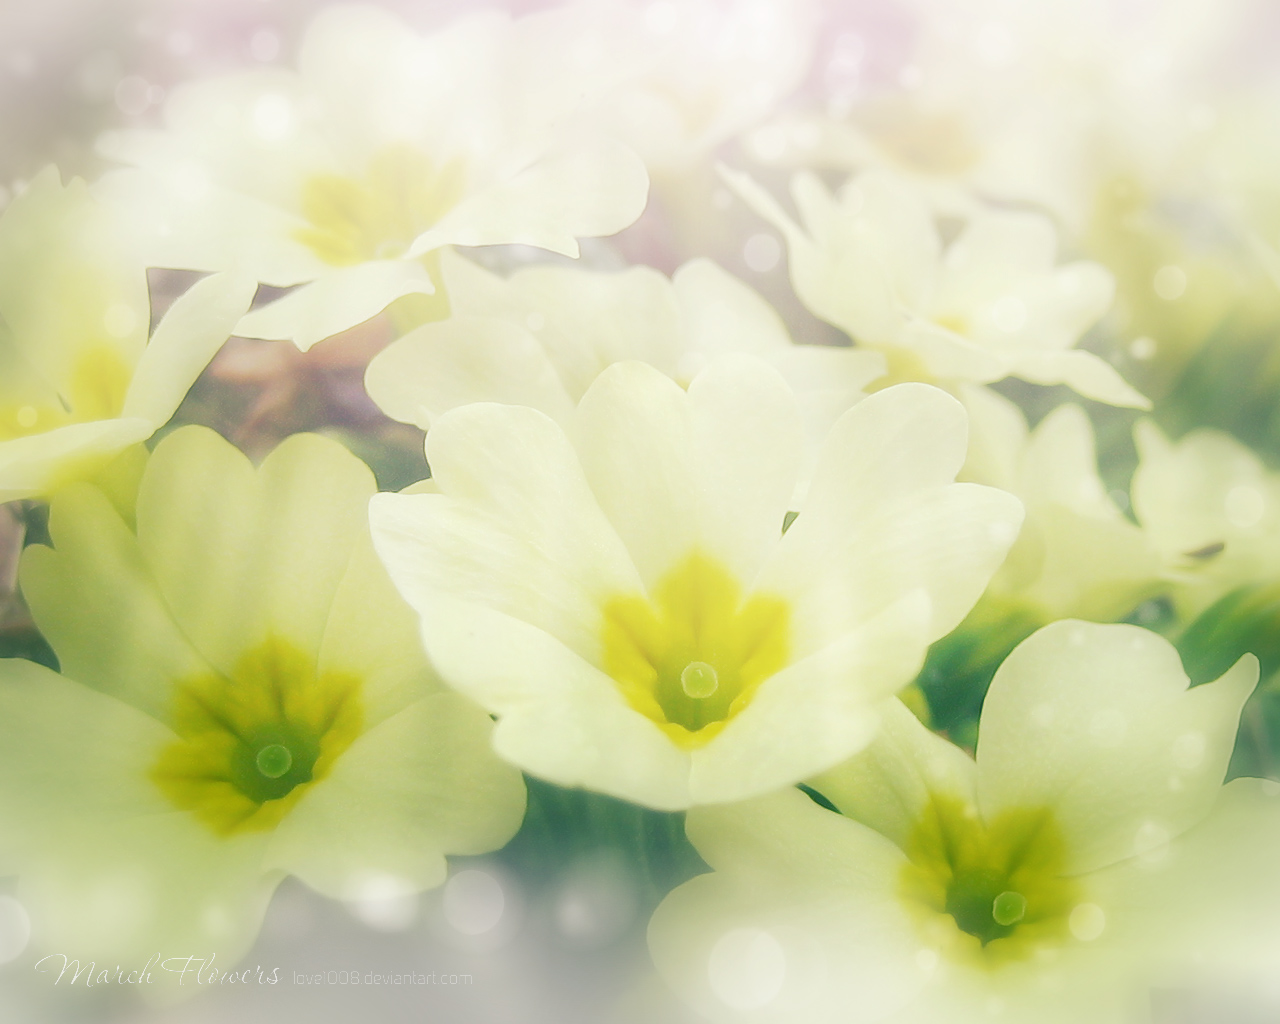 March Flowers 9 by love1008 on DeviantArt